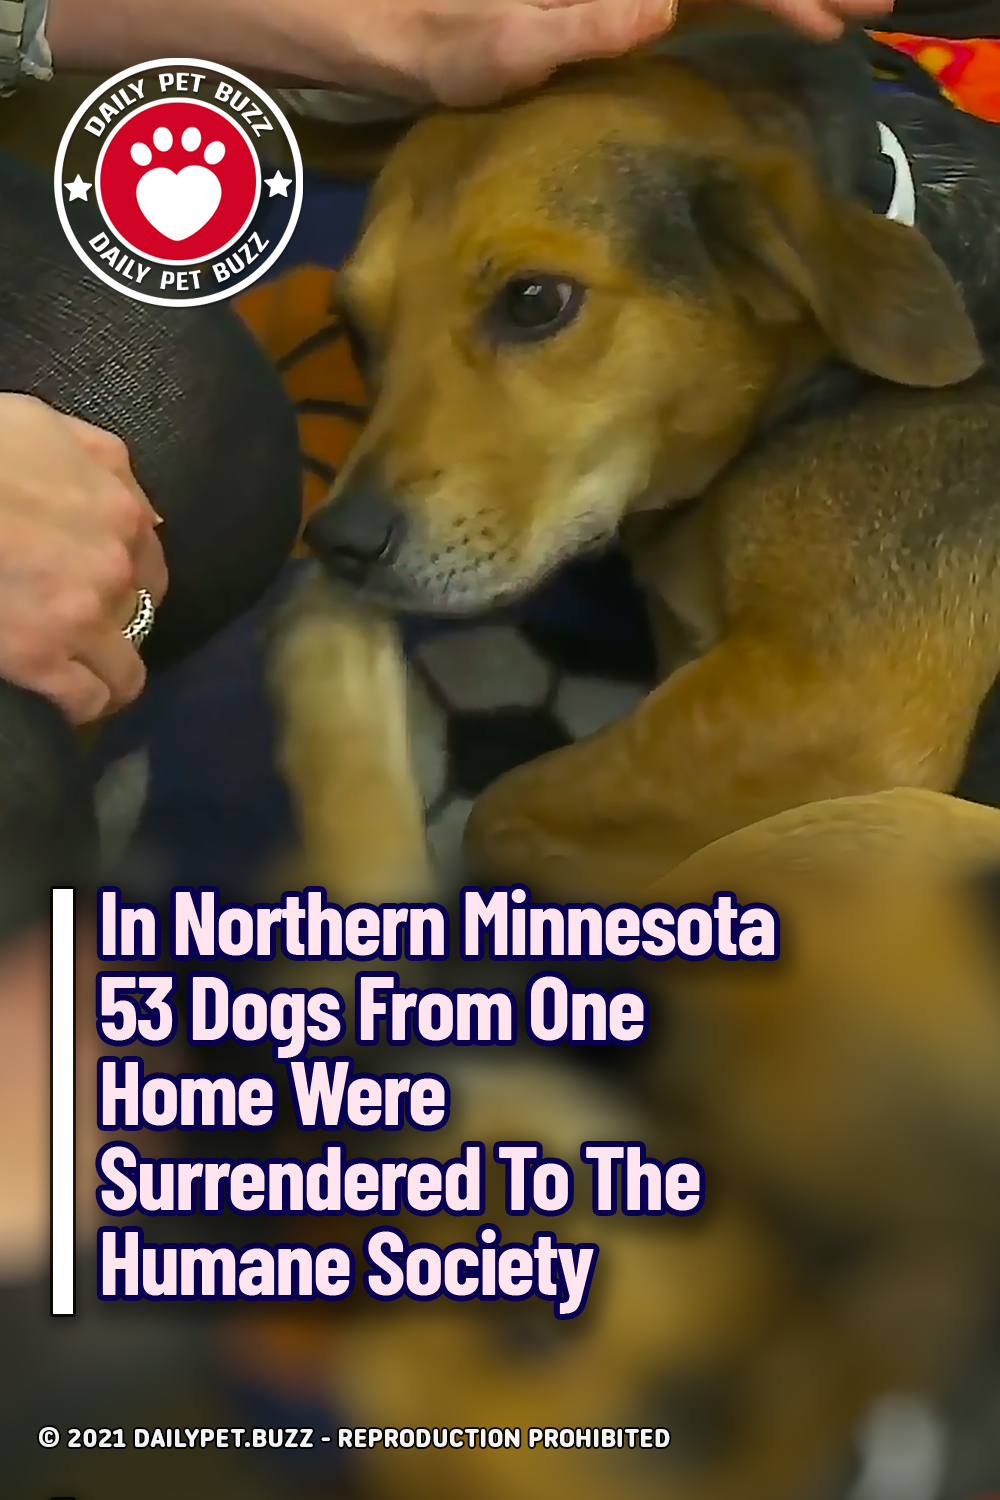 In Northern Minnesota 53 Dogs From One Home Were Surrendered To The Humane Society